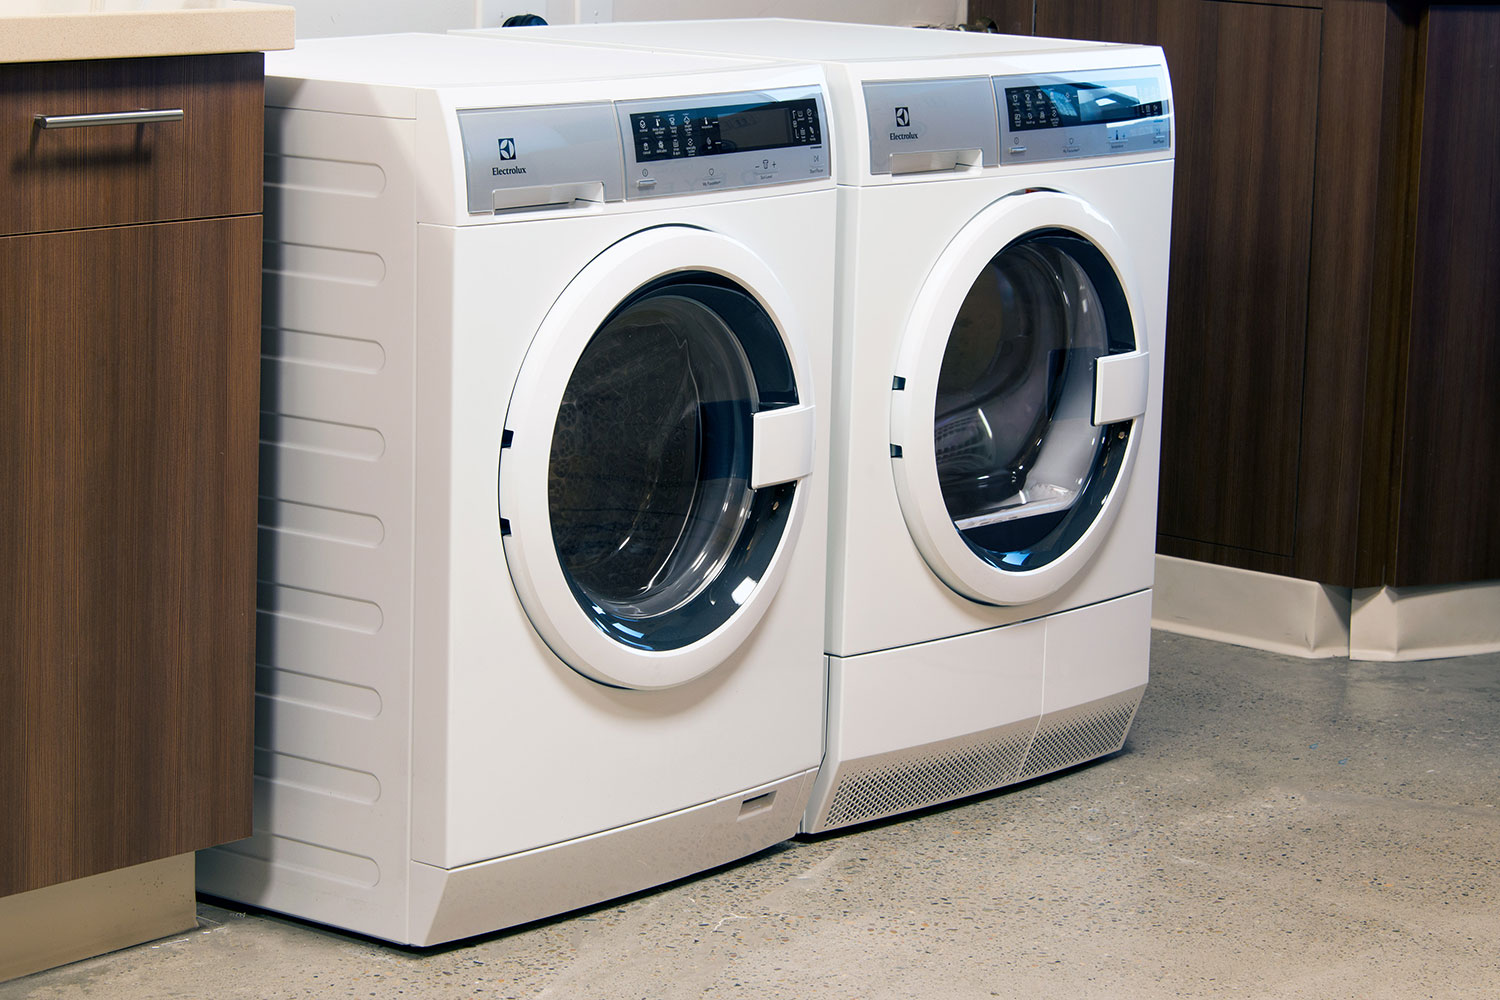 washer and dryer sharing electrolux suggests an u0027uber for service